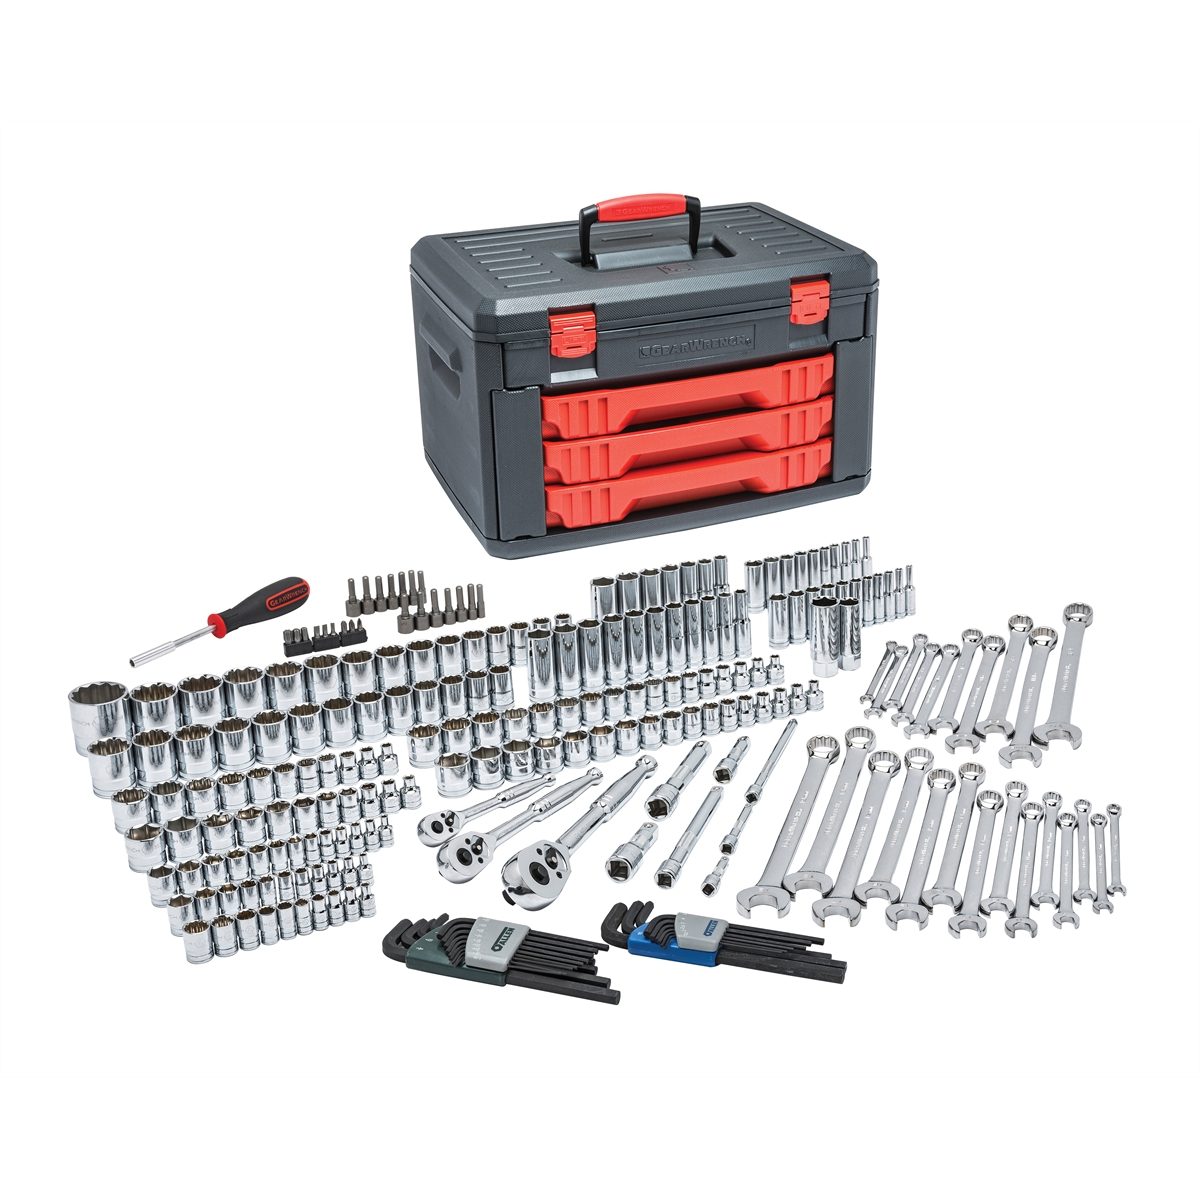 GearWrench 239-Piece SAE/Metric Mechanic's Tool Set with 3 Drawer Case